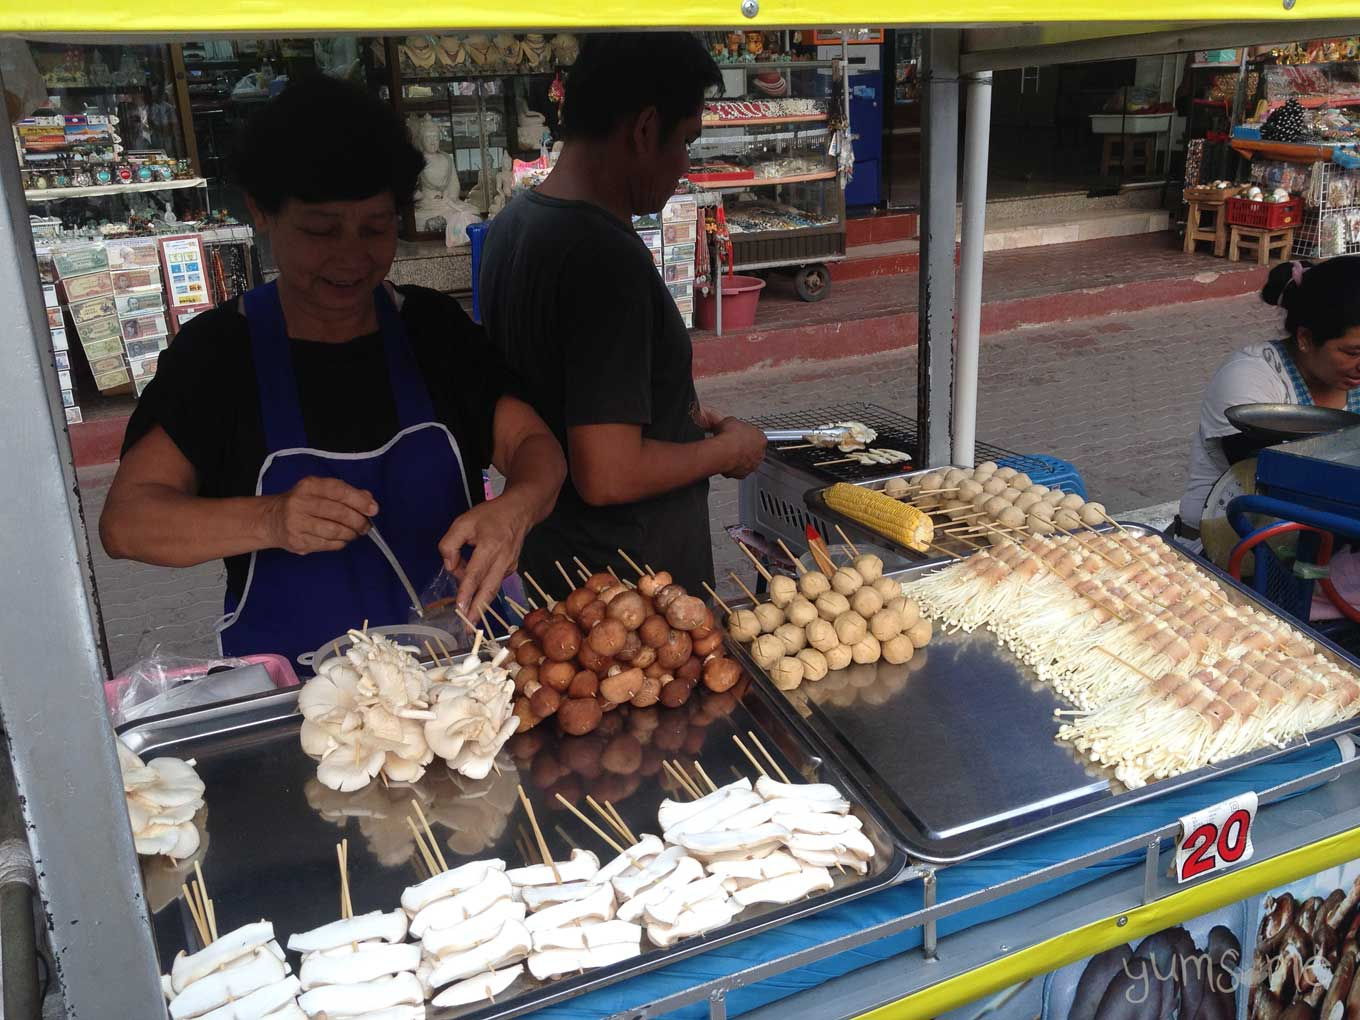 Mushrooms, tofu balls, and corn on the cob being sold from a street cart in Mae Sai, Thailand.